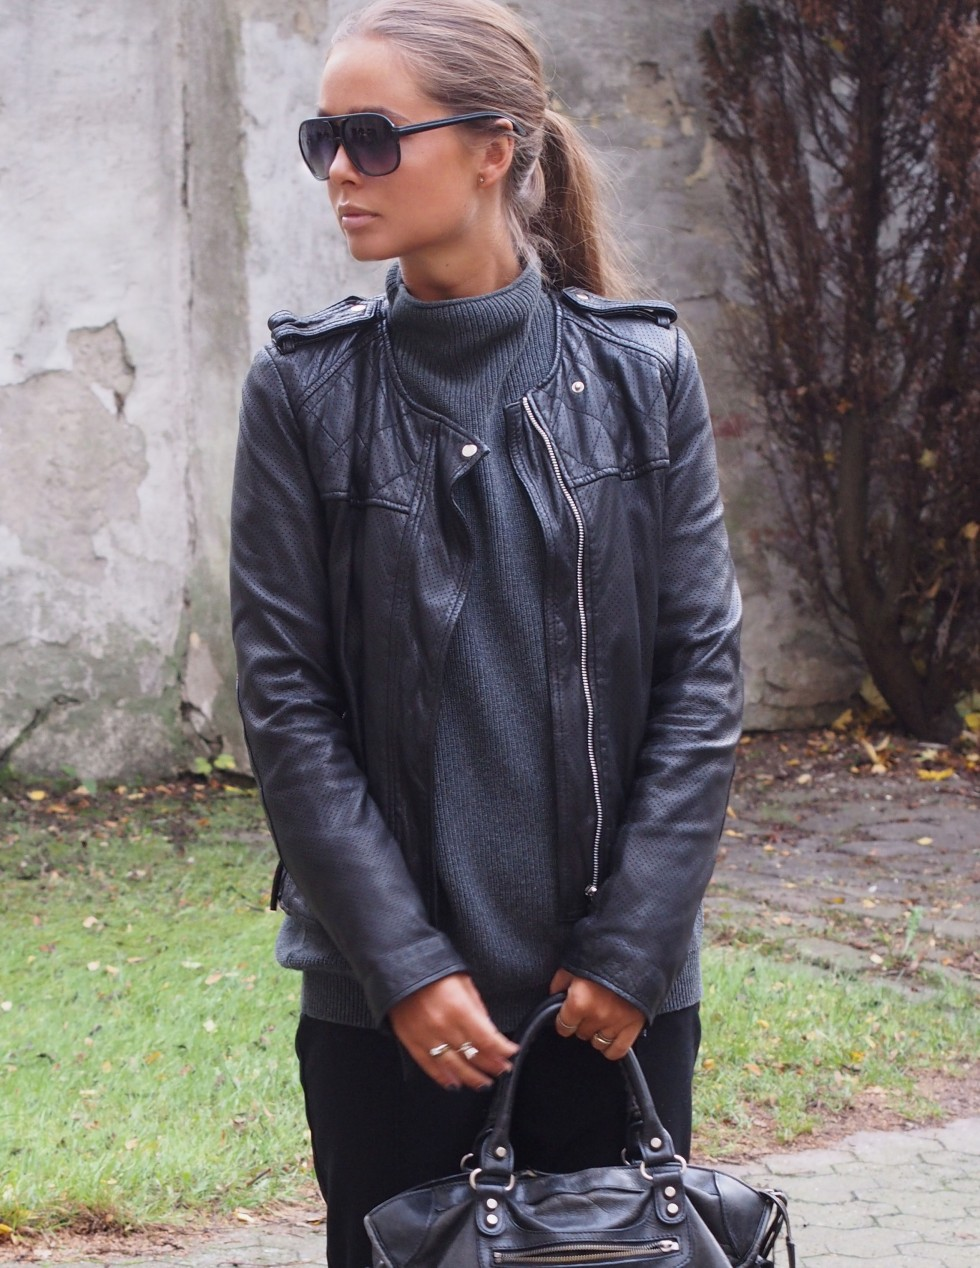 Maria Kragmann is wearing a leather jacket from MDK